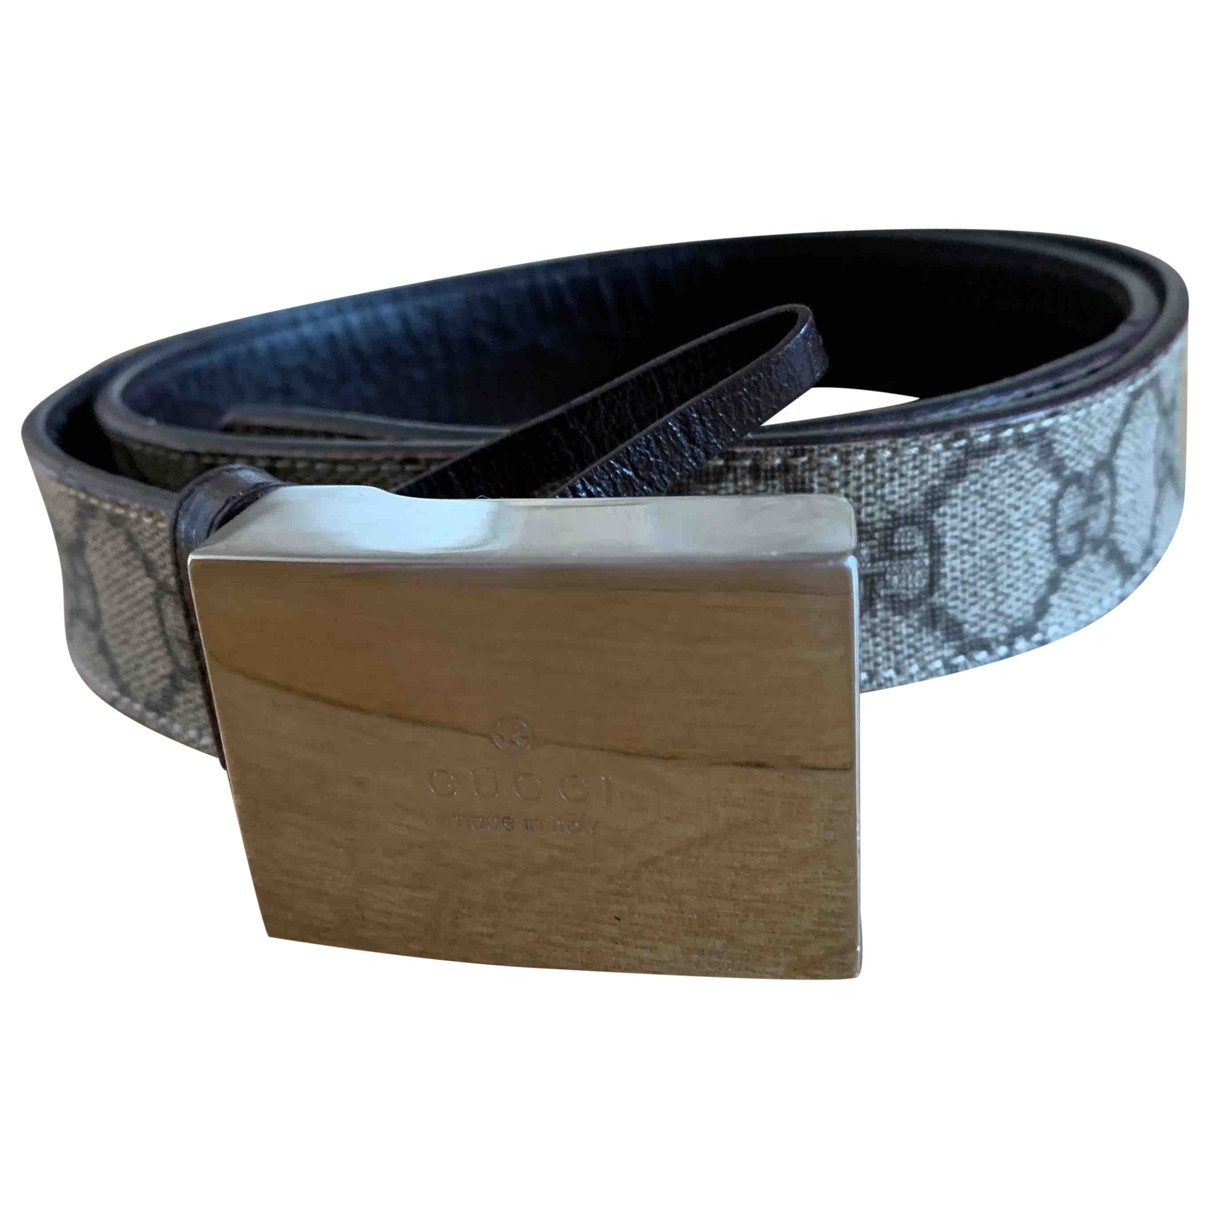 Gucci \N Beige Cloth belt for Women XS International